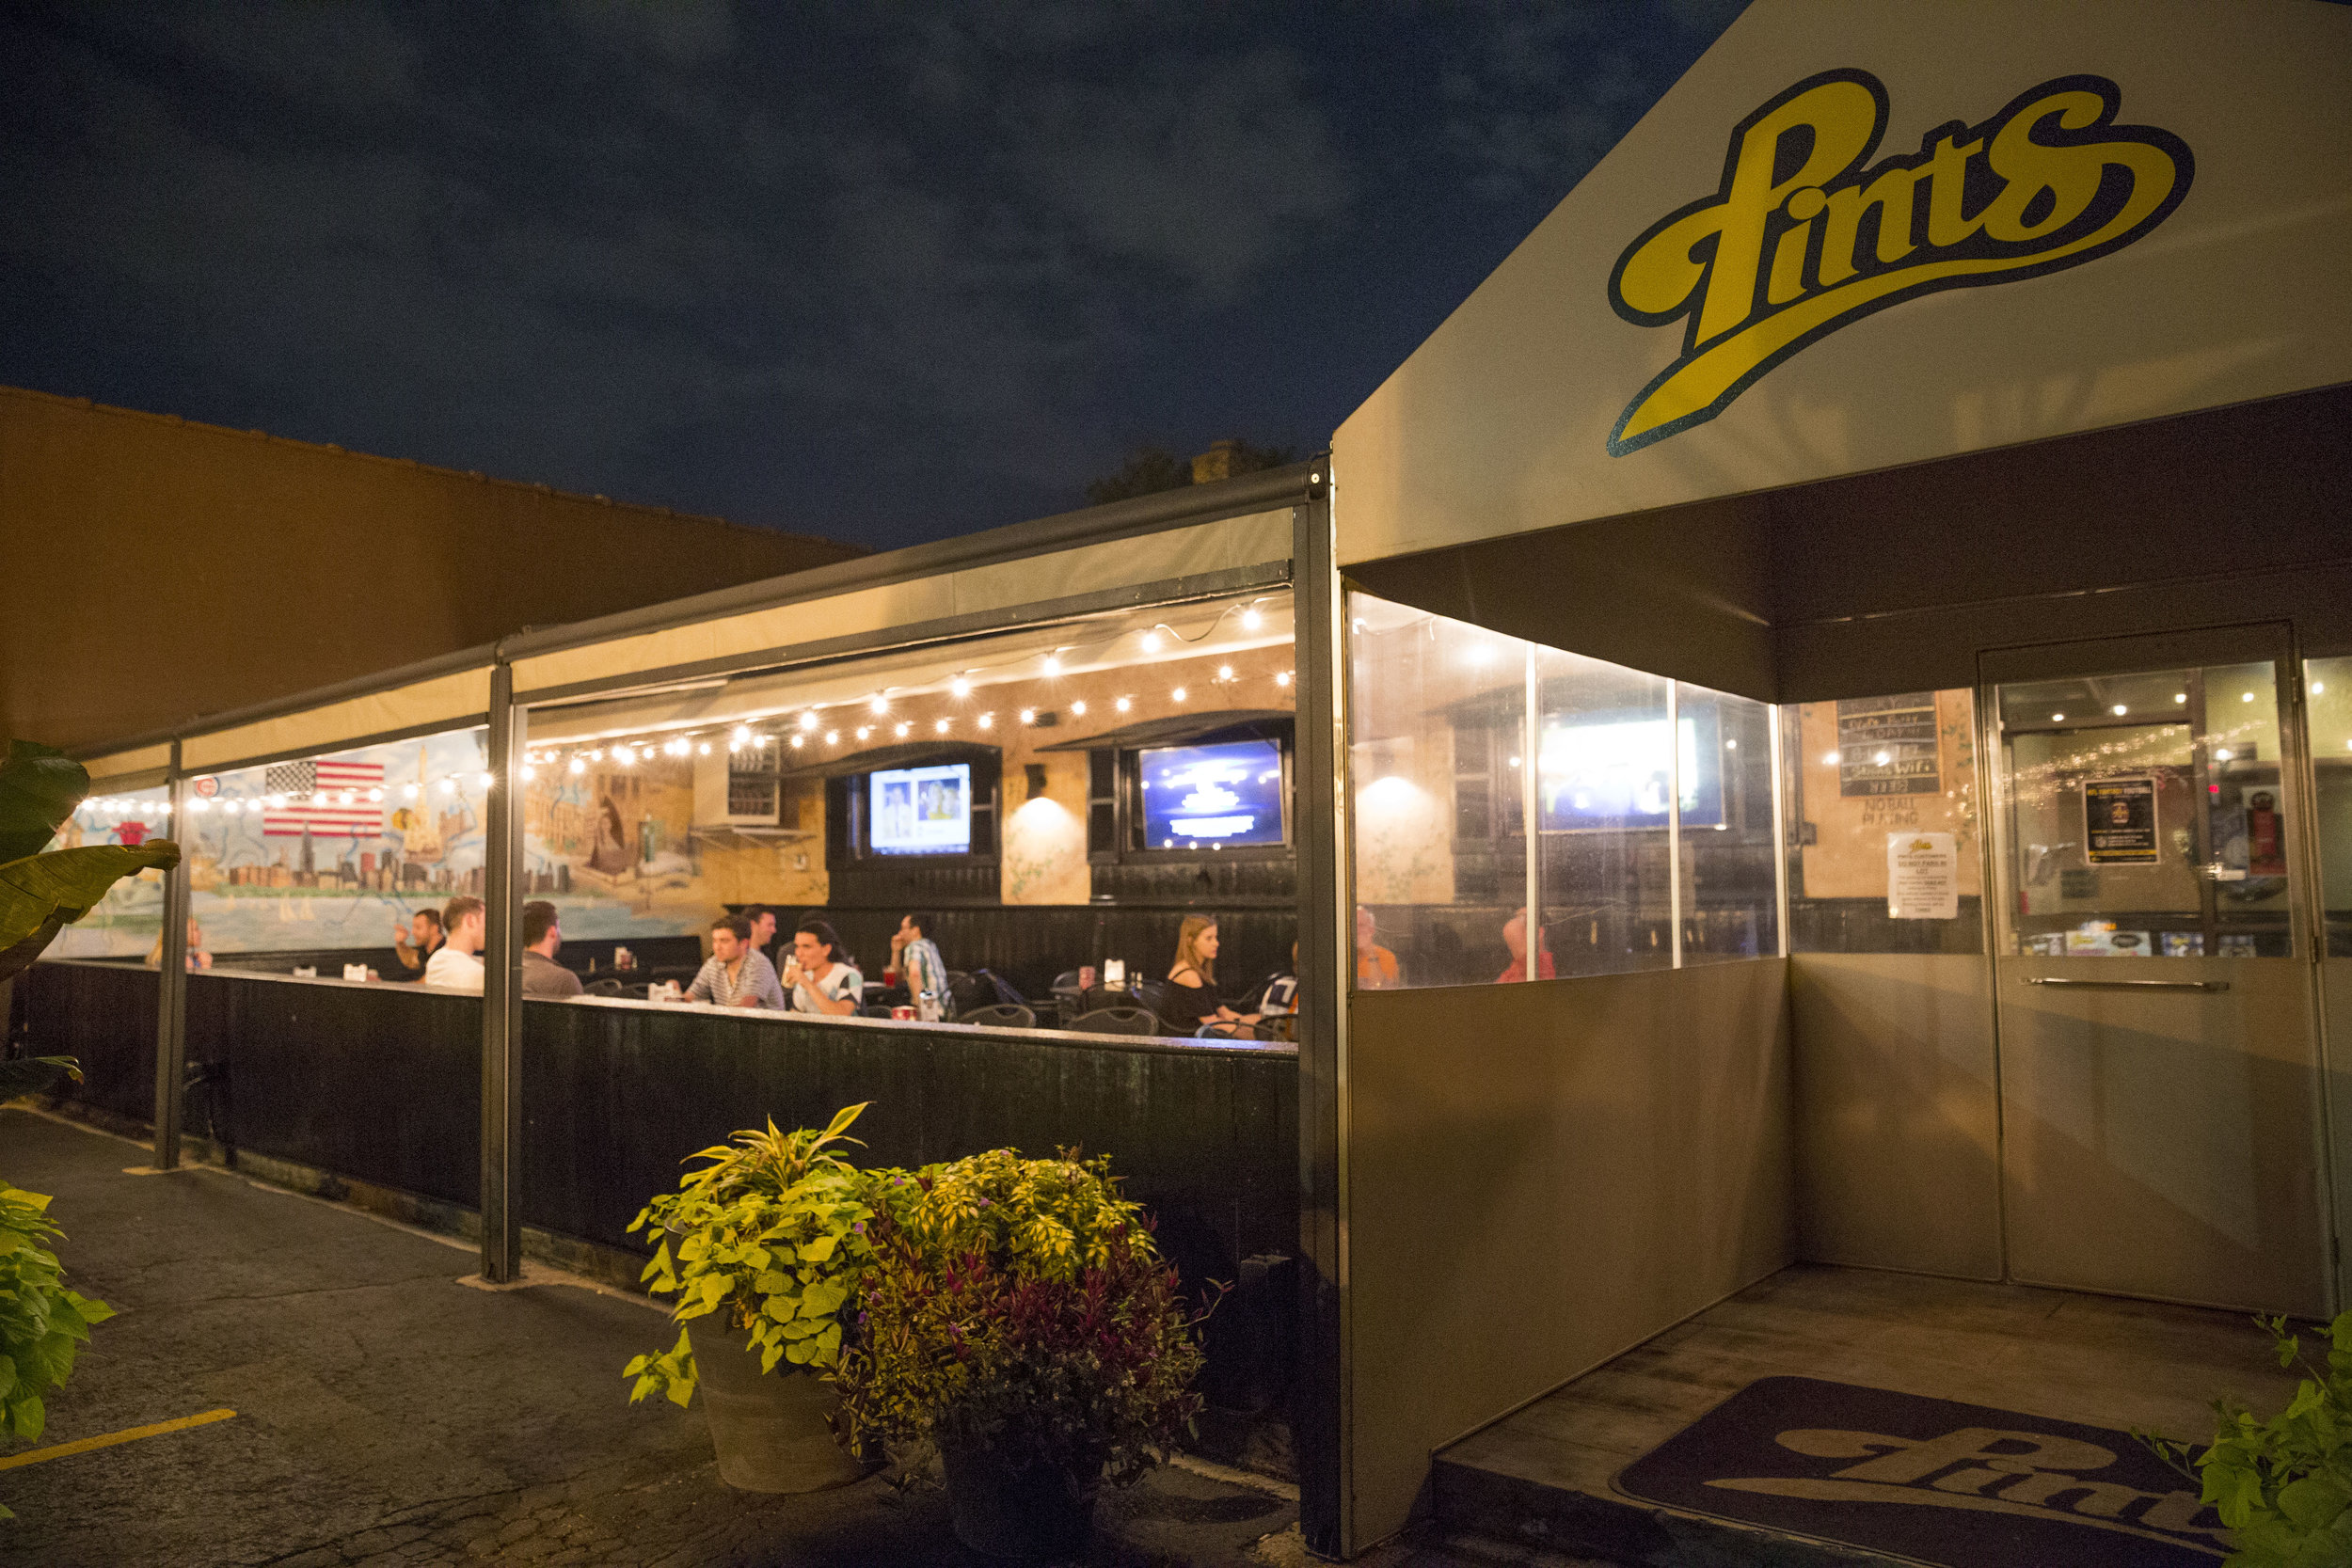 Photo by Marielle Decena   Pints near downtown Elmhurst sports a popular beer garden which has played host to EC events in the past.